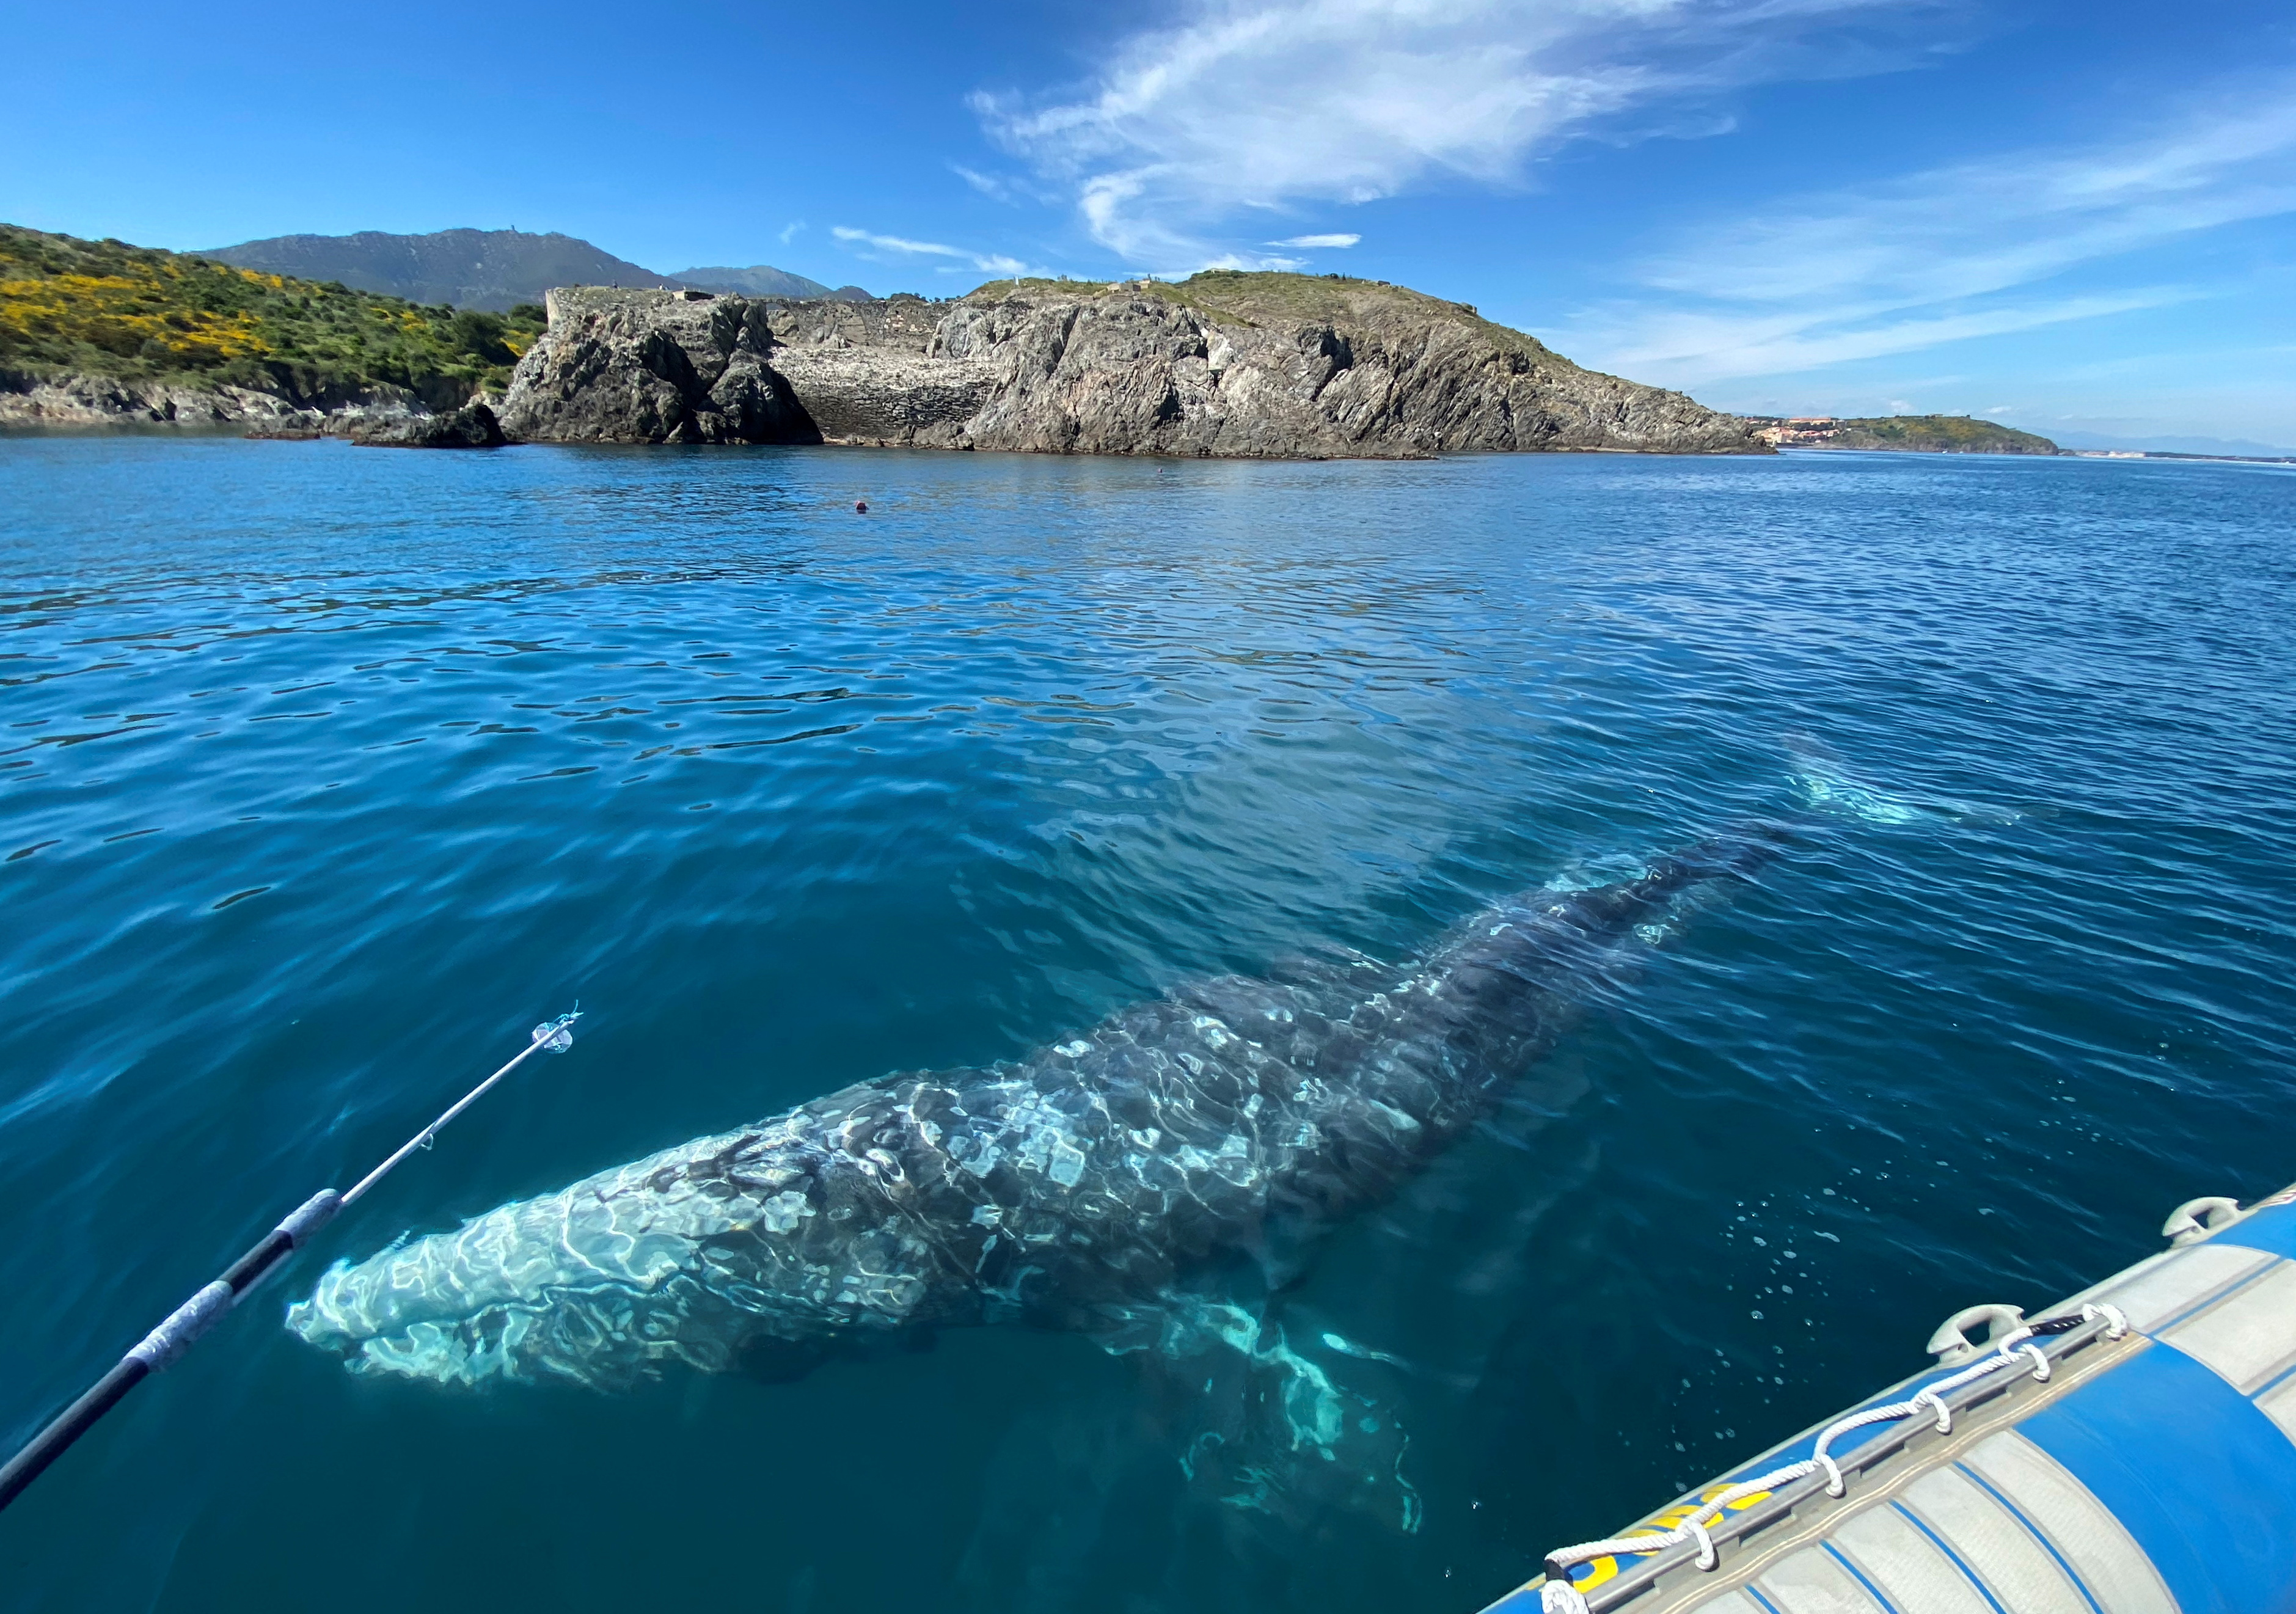 Thierry Auga-Bascou, scientist and member of the French Biodiversity Agency (not pictured), takes a skin sample of Wally, the 15 month old gray whale, swimming in the Mediterranean Sea past the coast of Argeles-Sur-Mer, France, May 6, 2021. REUTERS/Alexandre Minguez